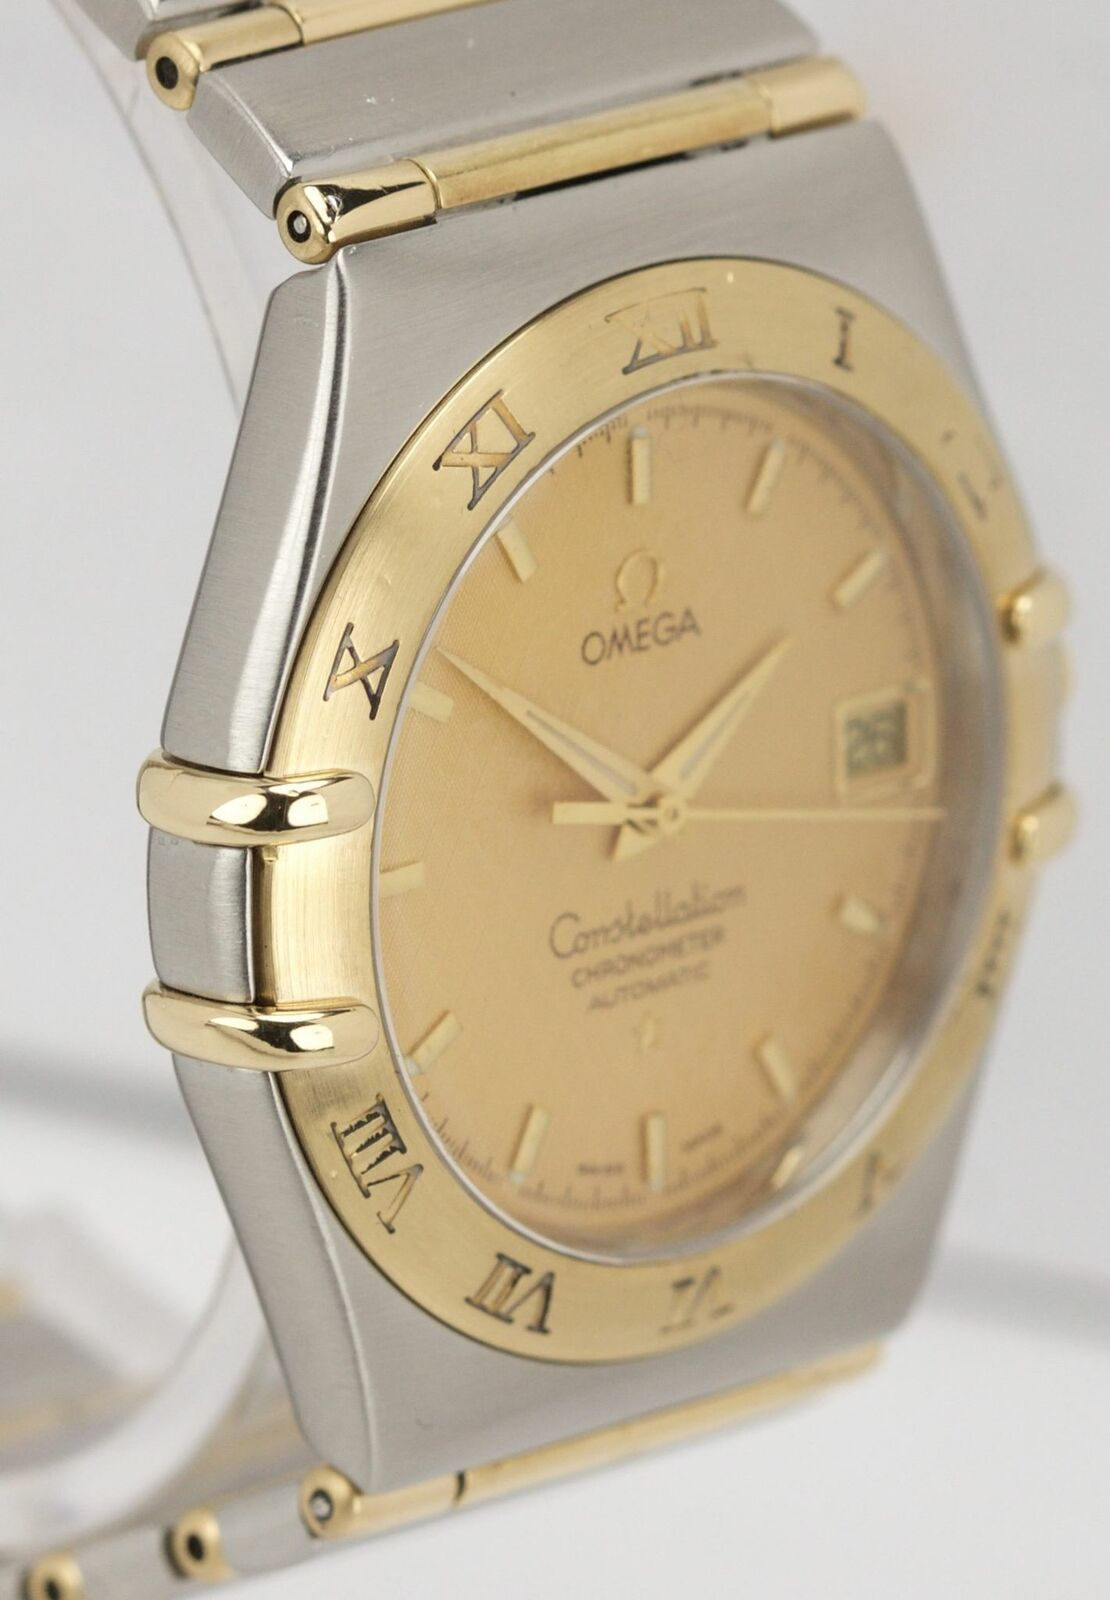 Omega Constellation Two-Tone 'Full Bar' Automatic 35.5mm Date Watch 1202.10.00